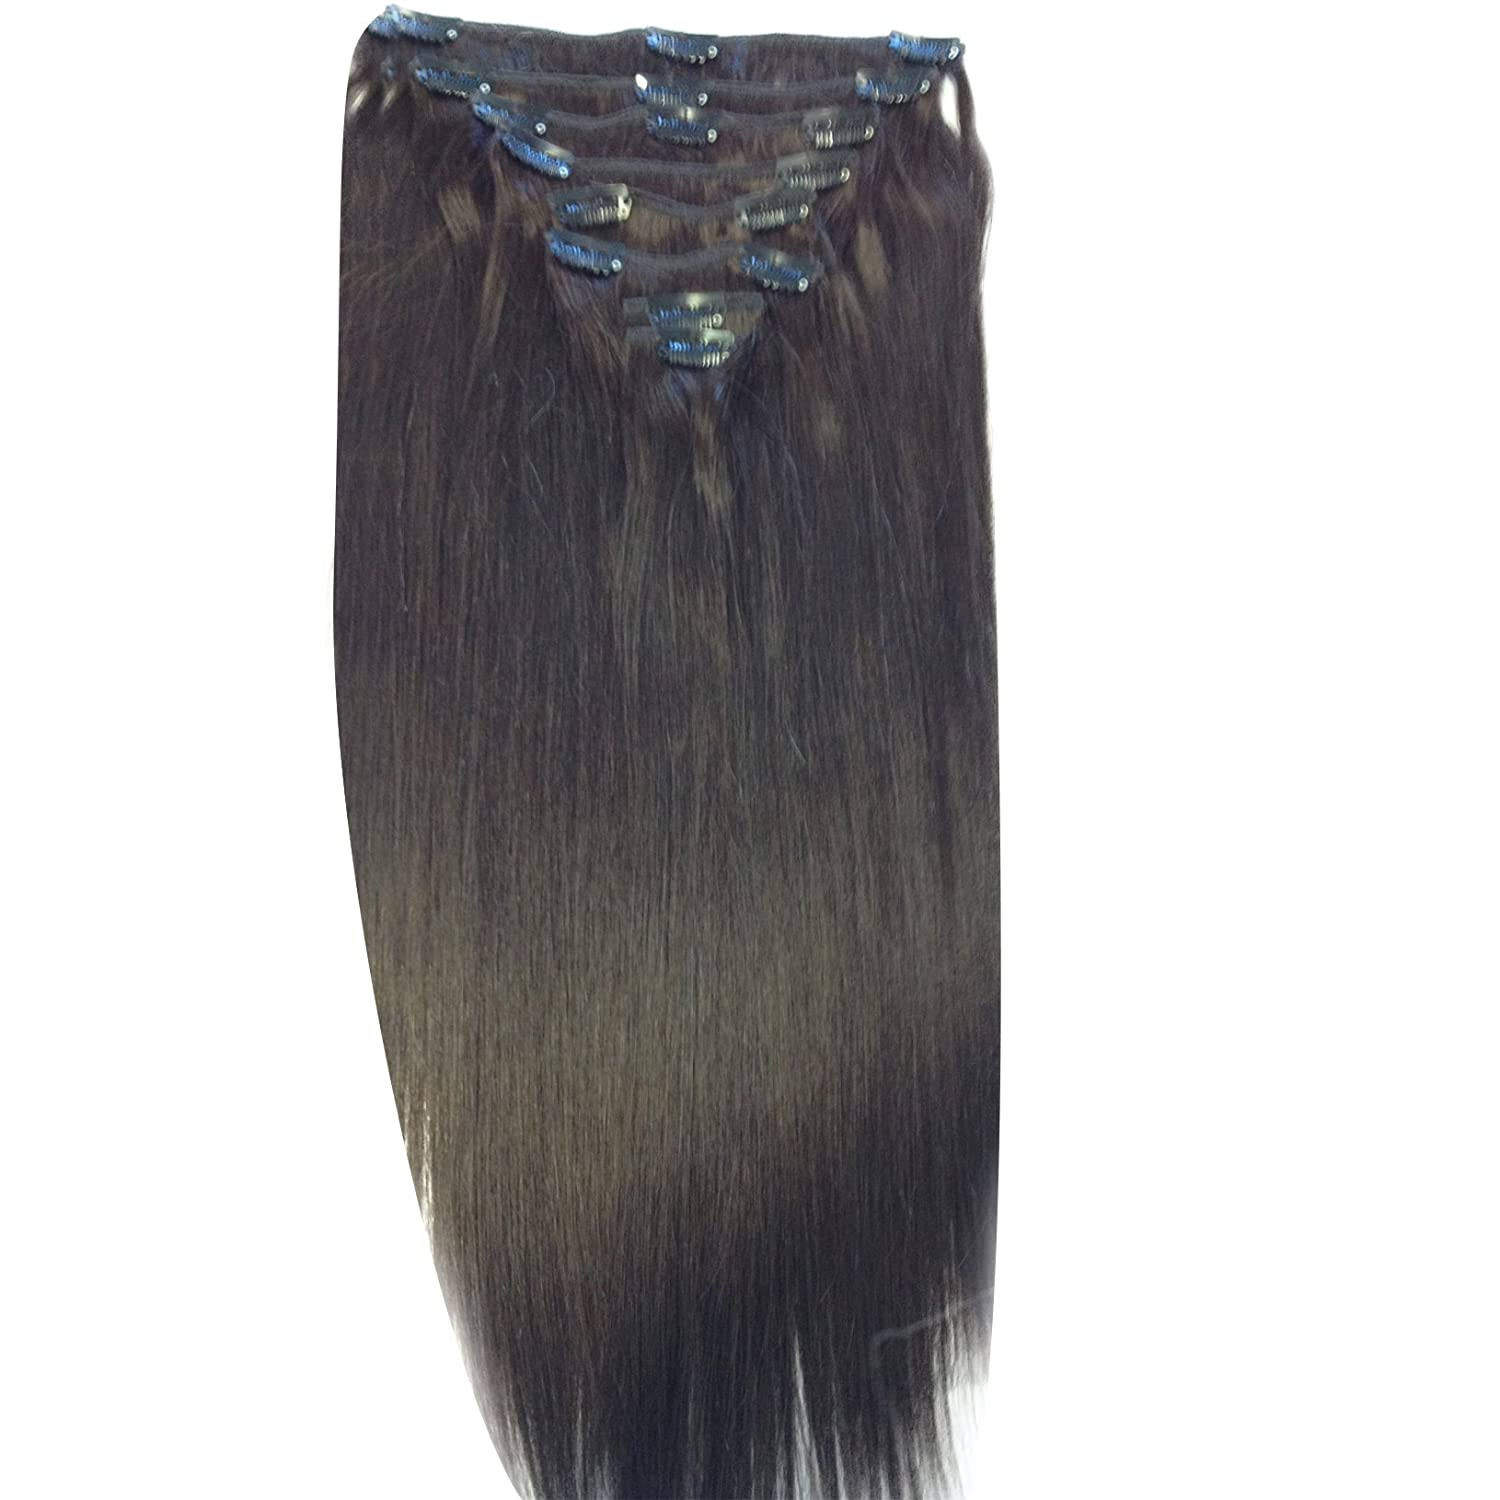 Amazon 24 Inch Dark Brown 2 Full Head Clip In Human Hair